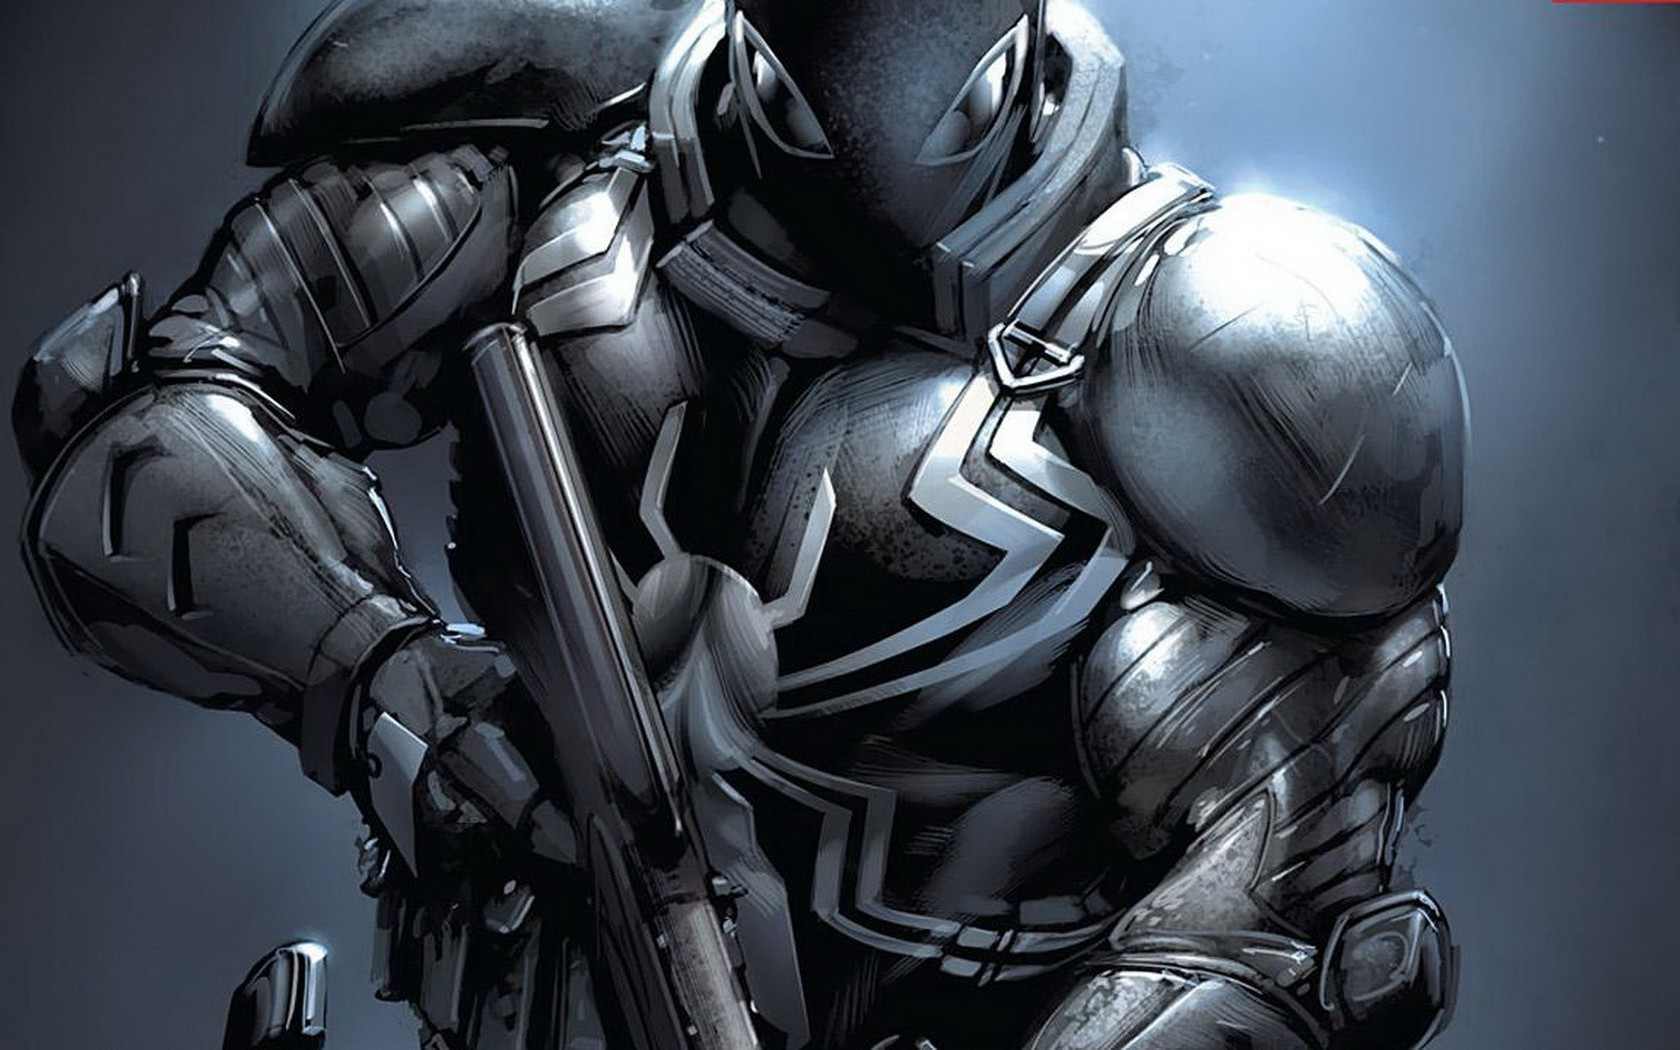 La alianza de Marvel y Wounded Warrior Project en Agent Venom